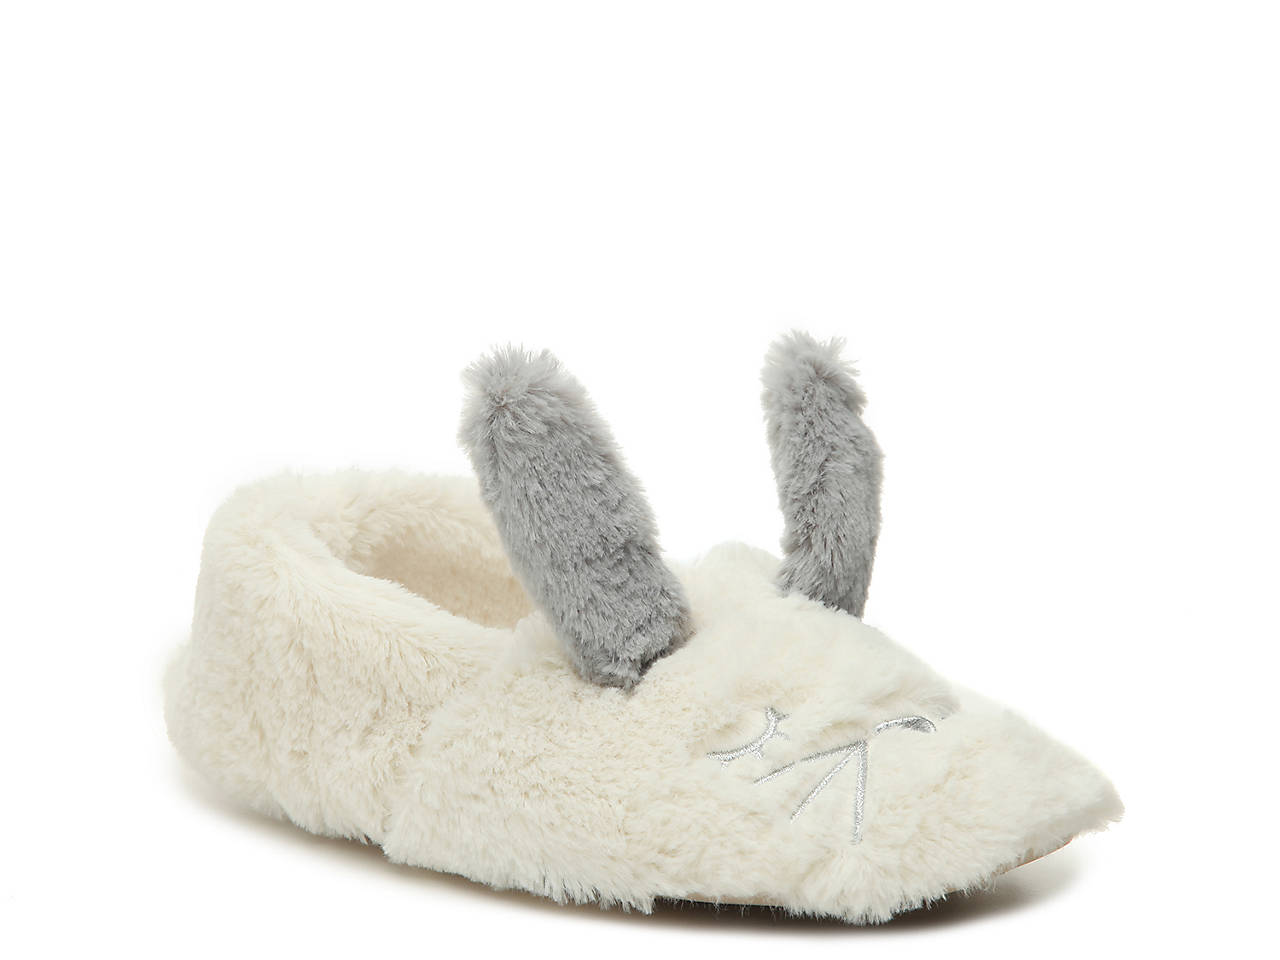 767560ff0d4b Kensie Bunny Slipper Women s Shoes